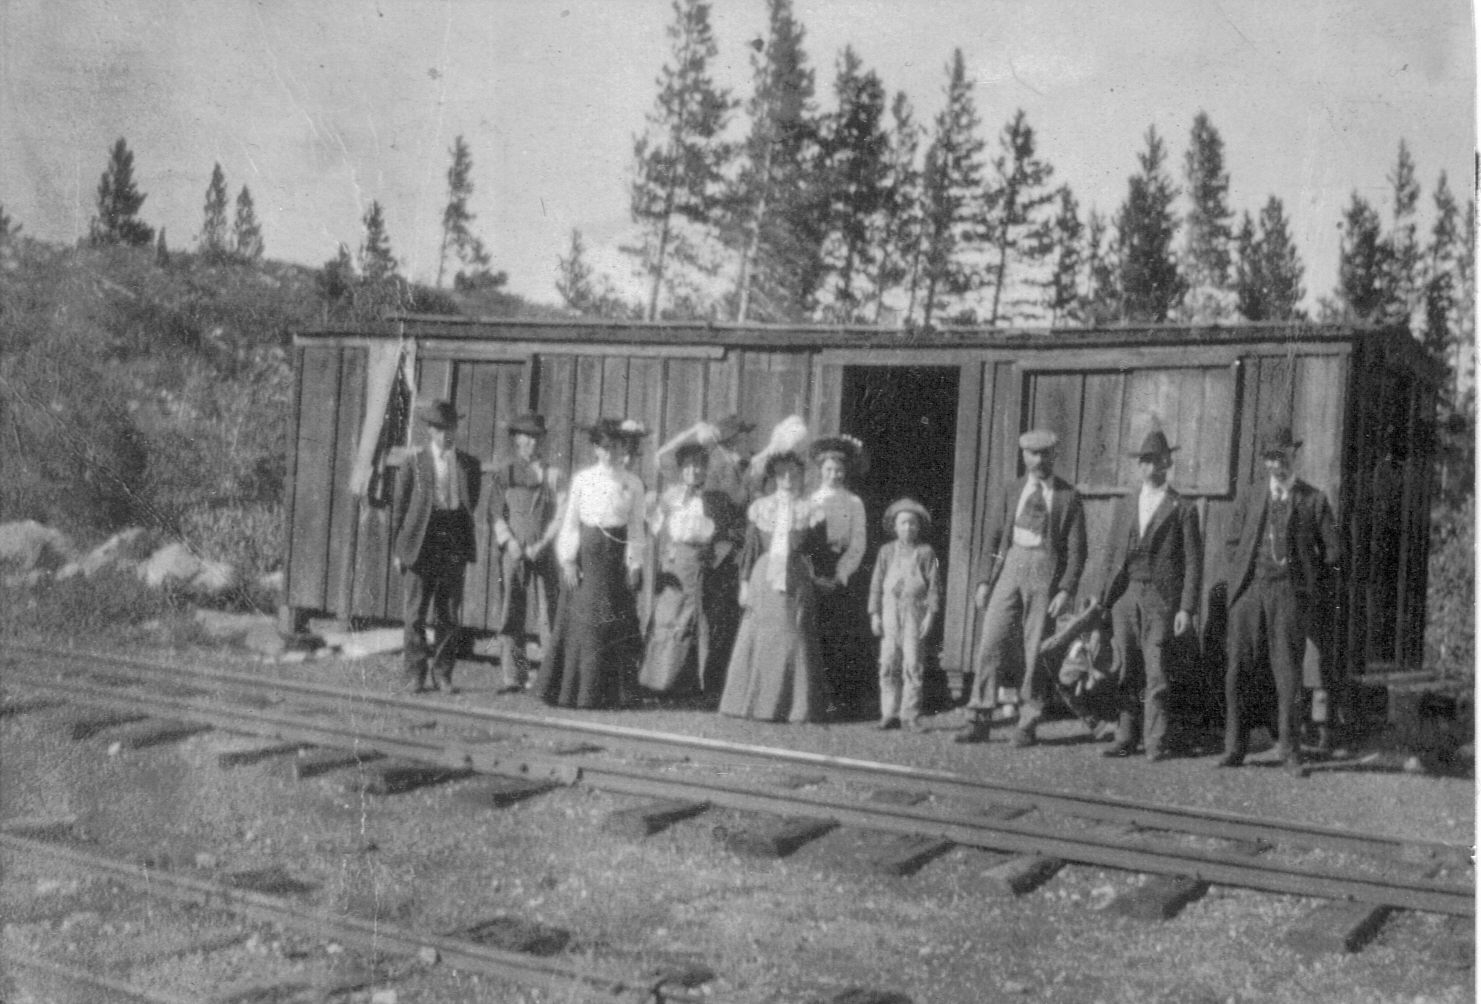 A group of people at the Frisco Depot located at the base of Mount Royal. Women frequently traveled in nicer clothing, complete with hat and jackets.